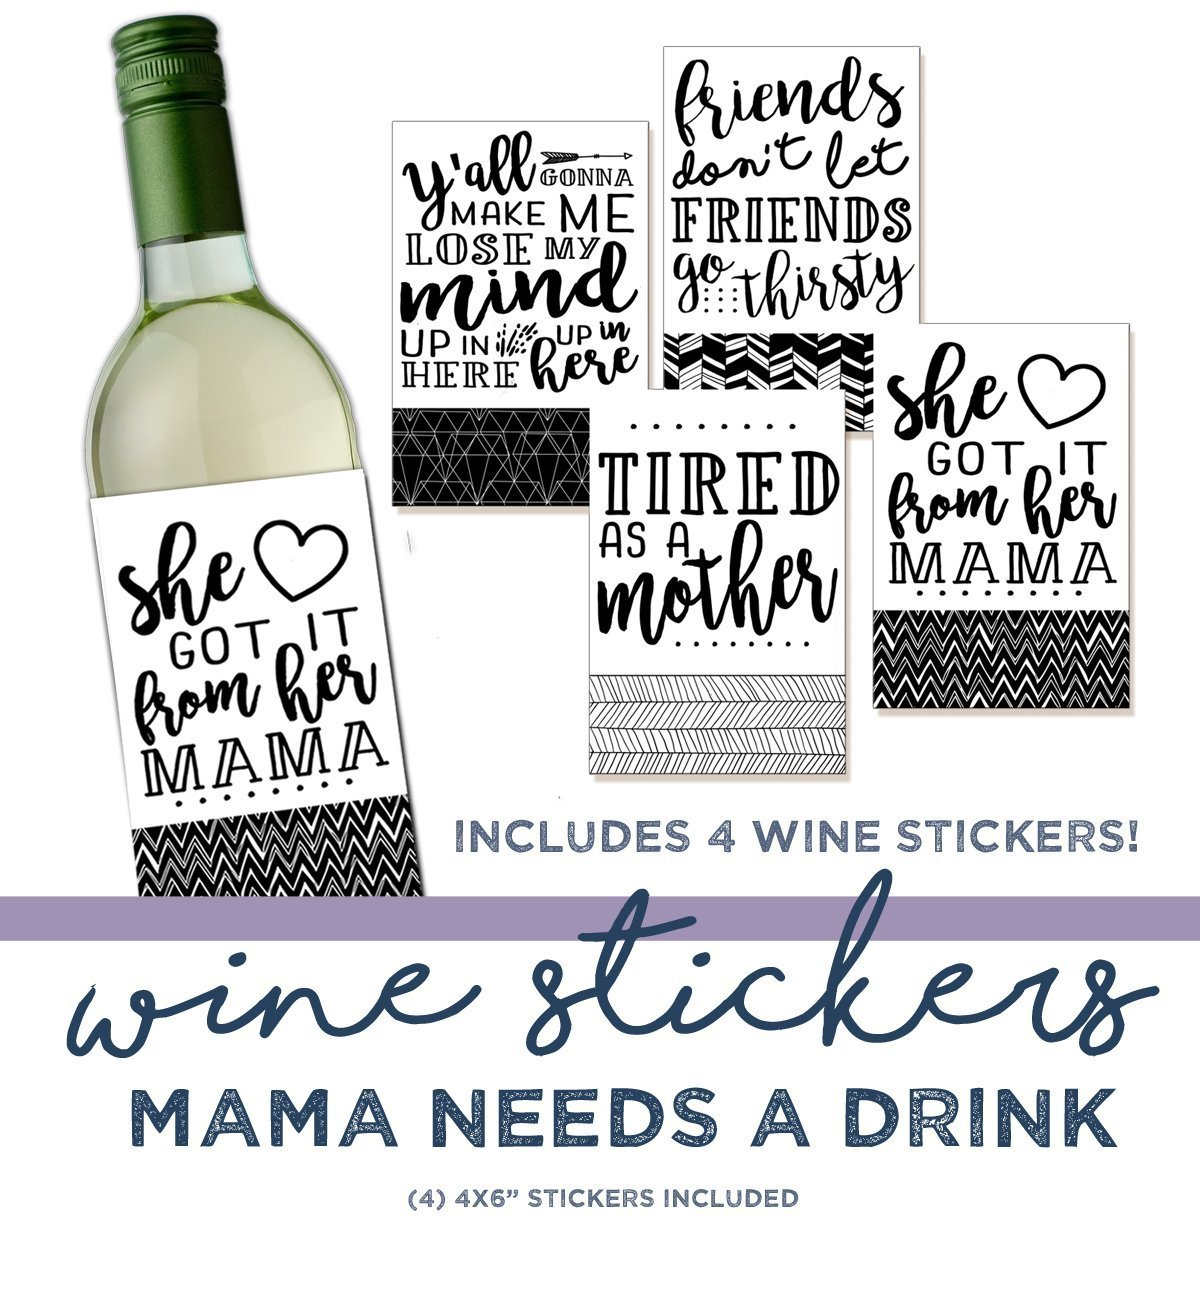 Gift Under $10 - Funny Wine Sticker - Wine Label - Hostess Gift - 4 Wine Labels - Quotes on Wine - Wine Gift - Gift for Her - Stocking Stuffer - Gift For Wine Lover - Gift for Mom - Mama Needs a Drink